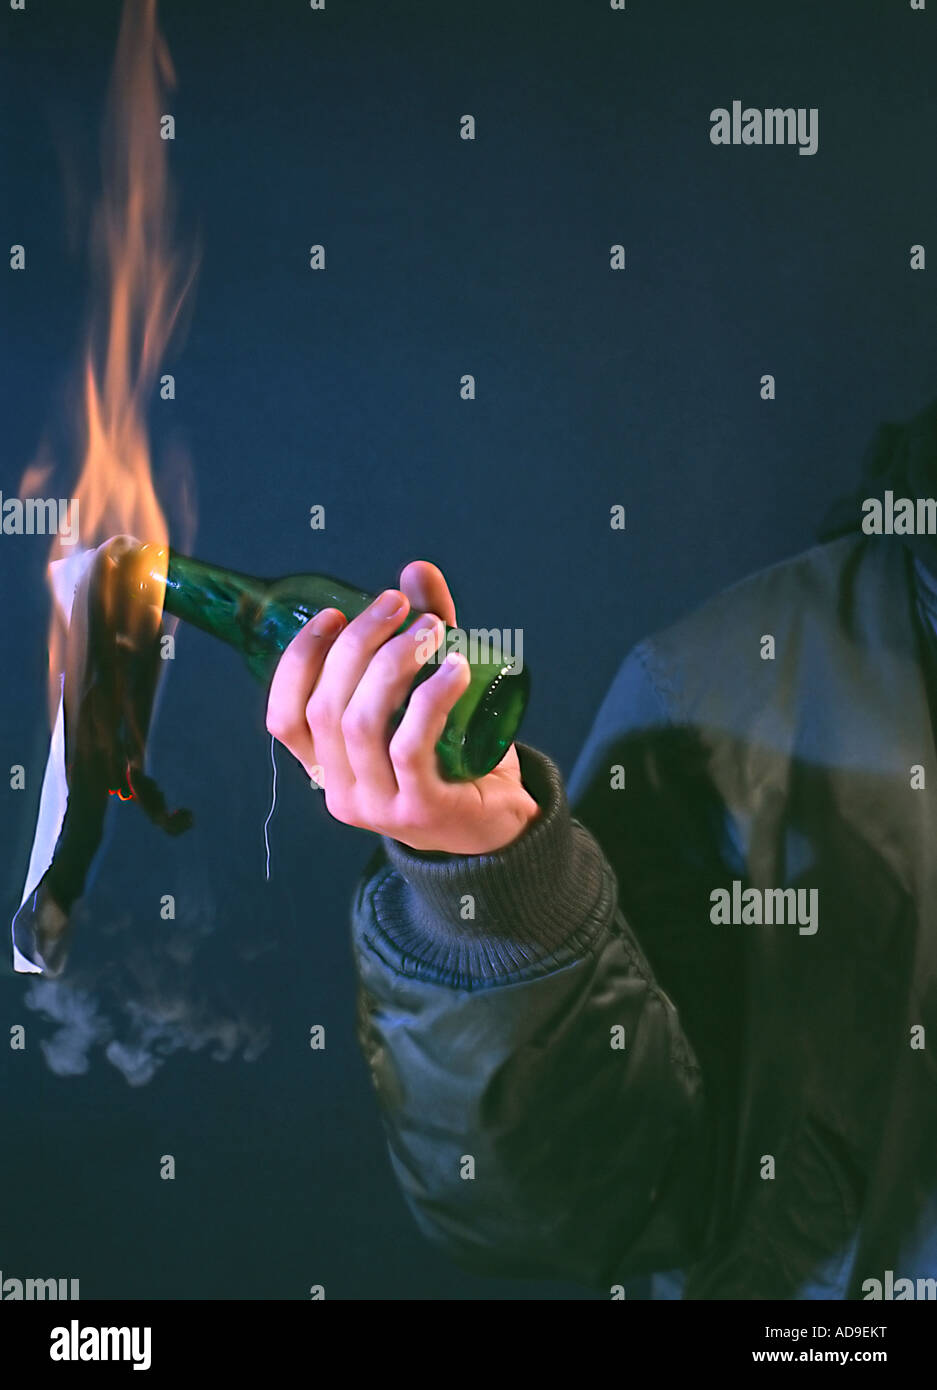 hand throwing a Molotwcoctail burning bottle radical person in black bomber jacket - Stock Image